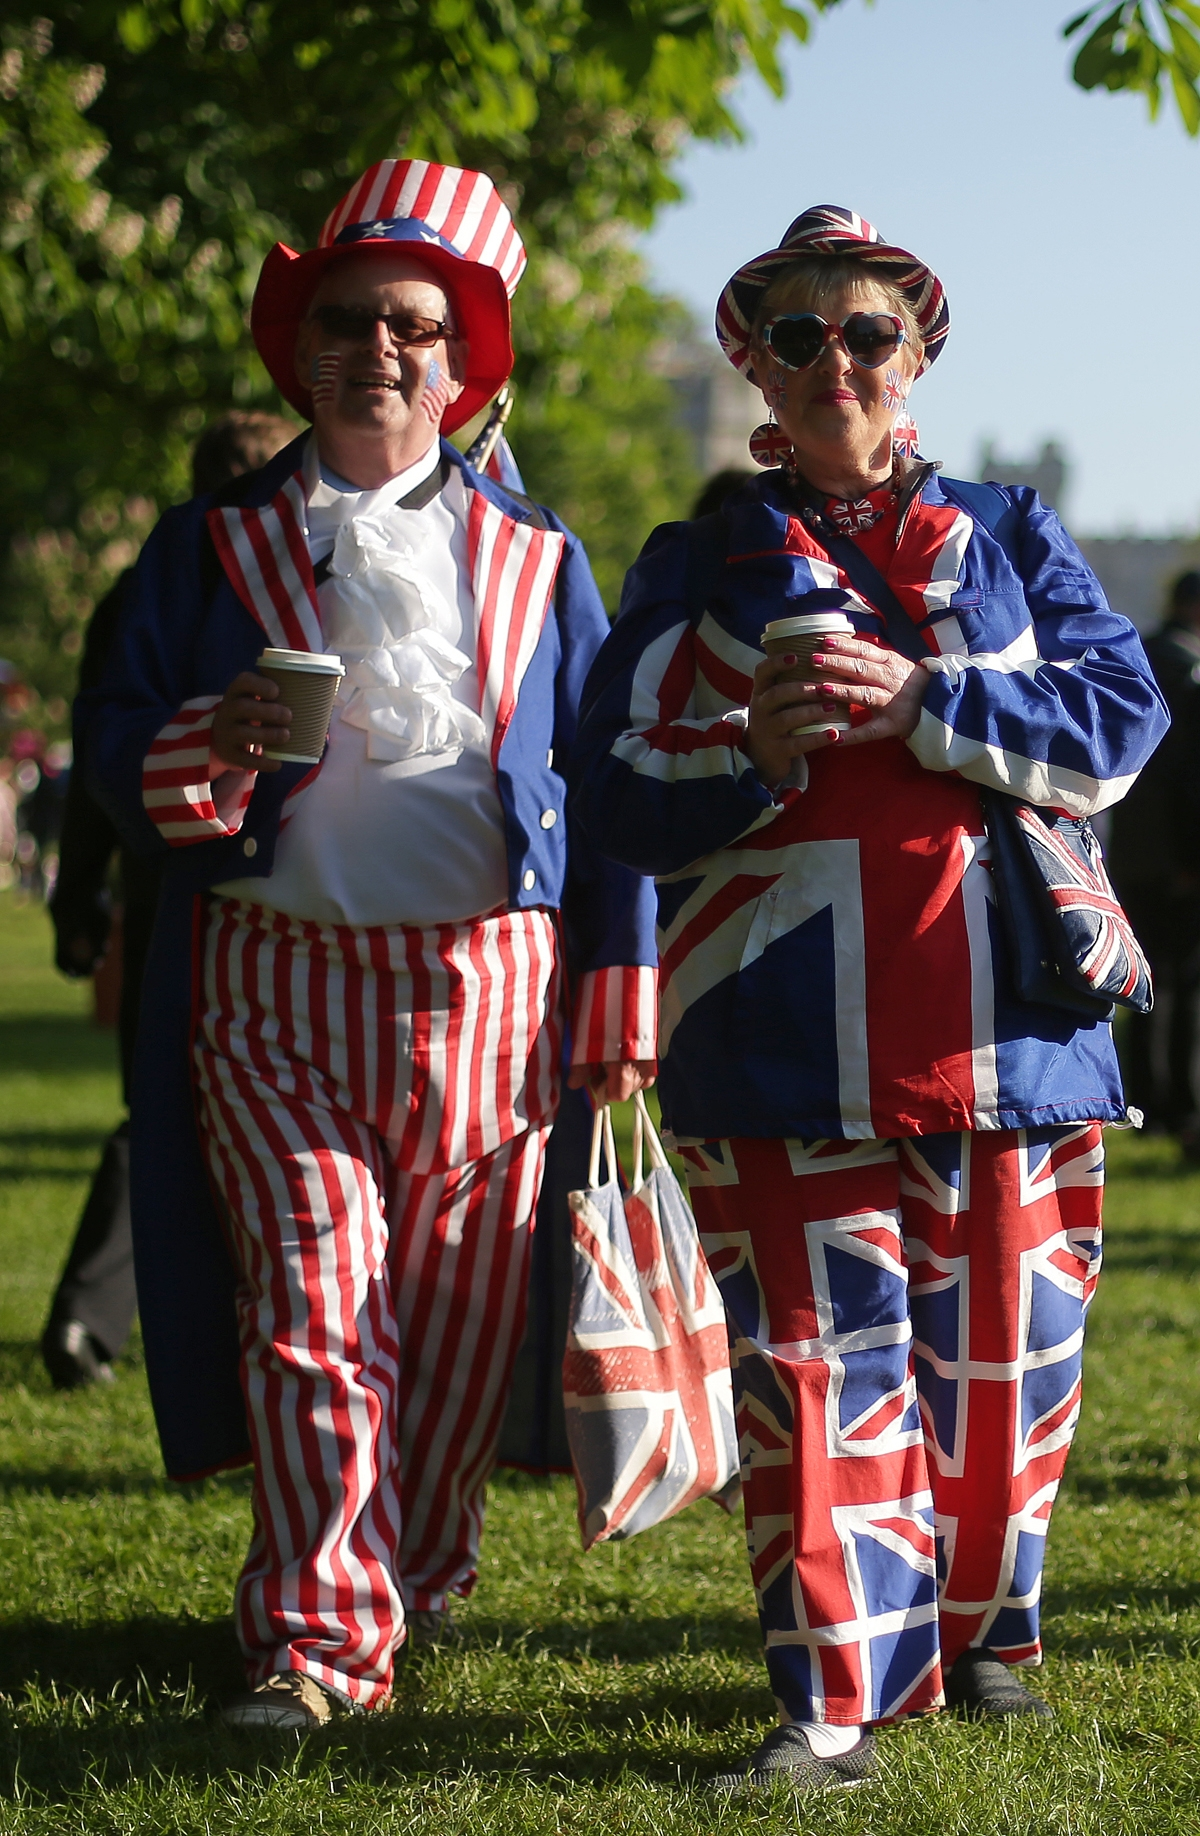 Well-wishers arrive on the Long Walk leading to Windsor Castle ahead of the wedding and carriage procession of Britain's Prince Harry and Meghan Markle in Windsor, on May 19, 2018. / AFP PHOTO / Daniel LEAL-OLIVAS